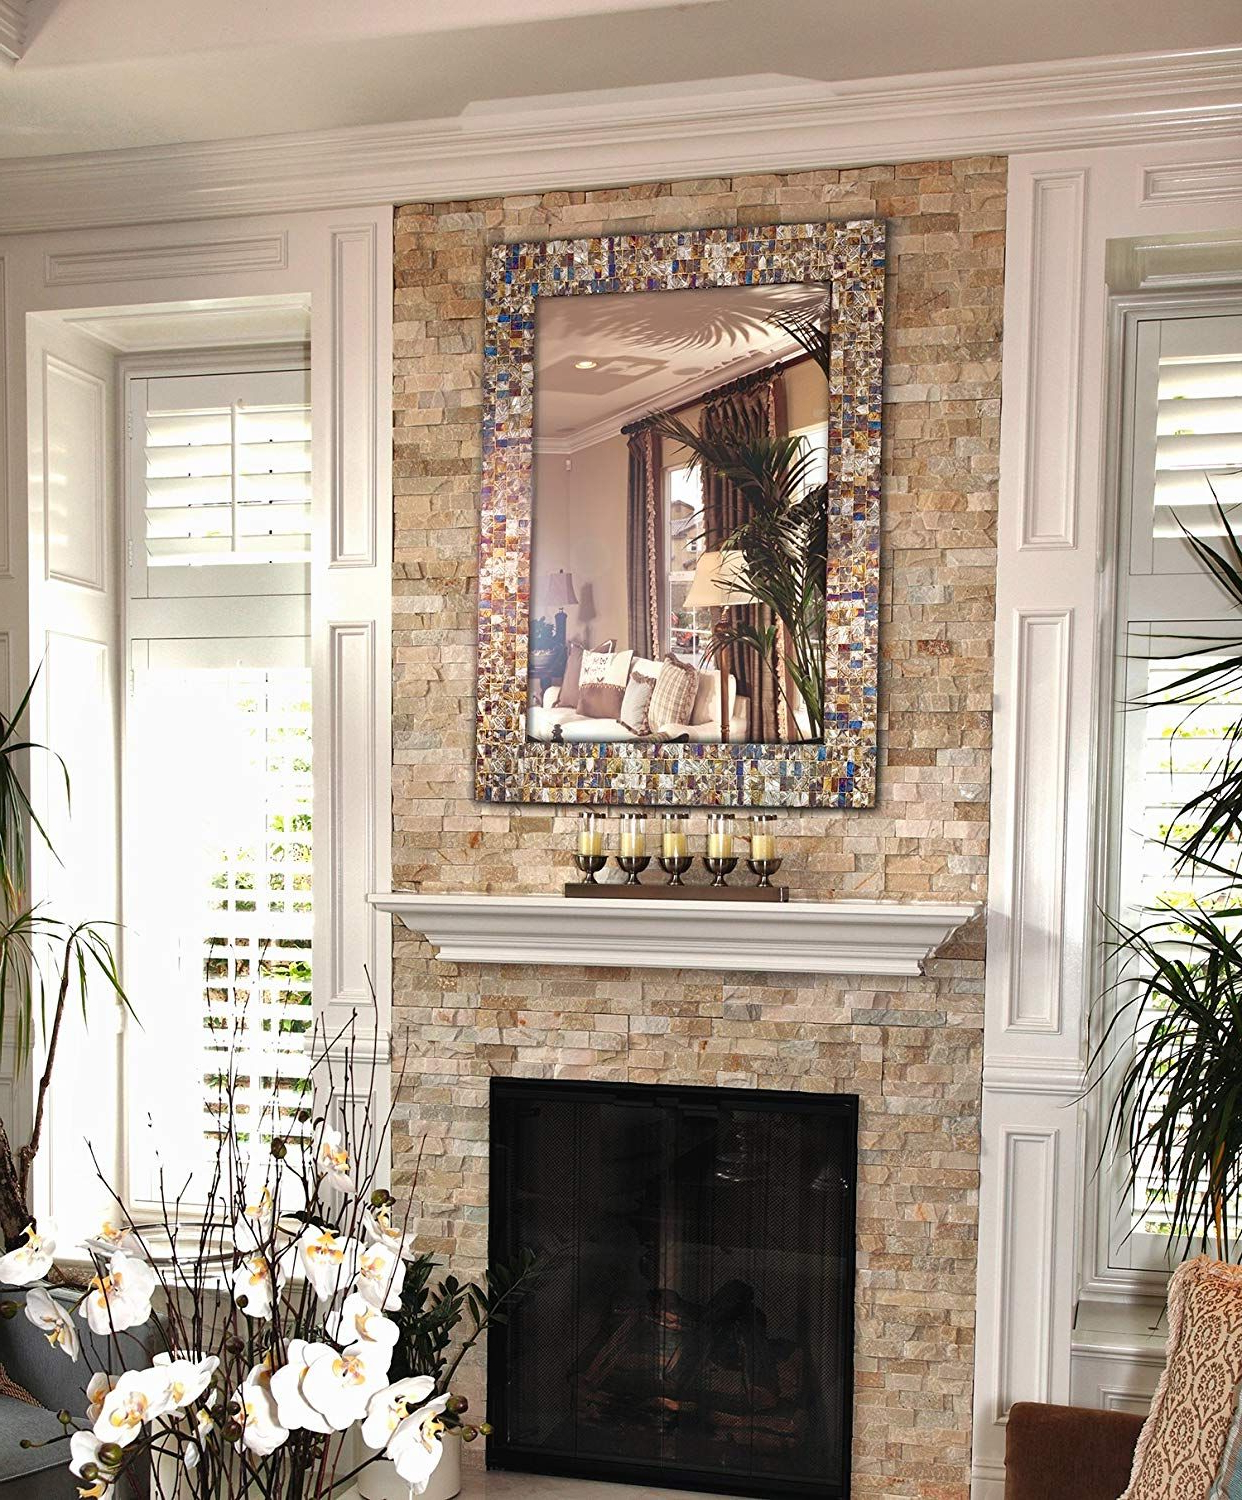 """Favorite Horizontal Decorative Wall Mirrors Regarding 30"""" X 24"""" Rectangular Decorative Wall Mirror, Wall Mount Vertical Or (View 17 of 20)"""